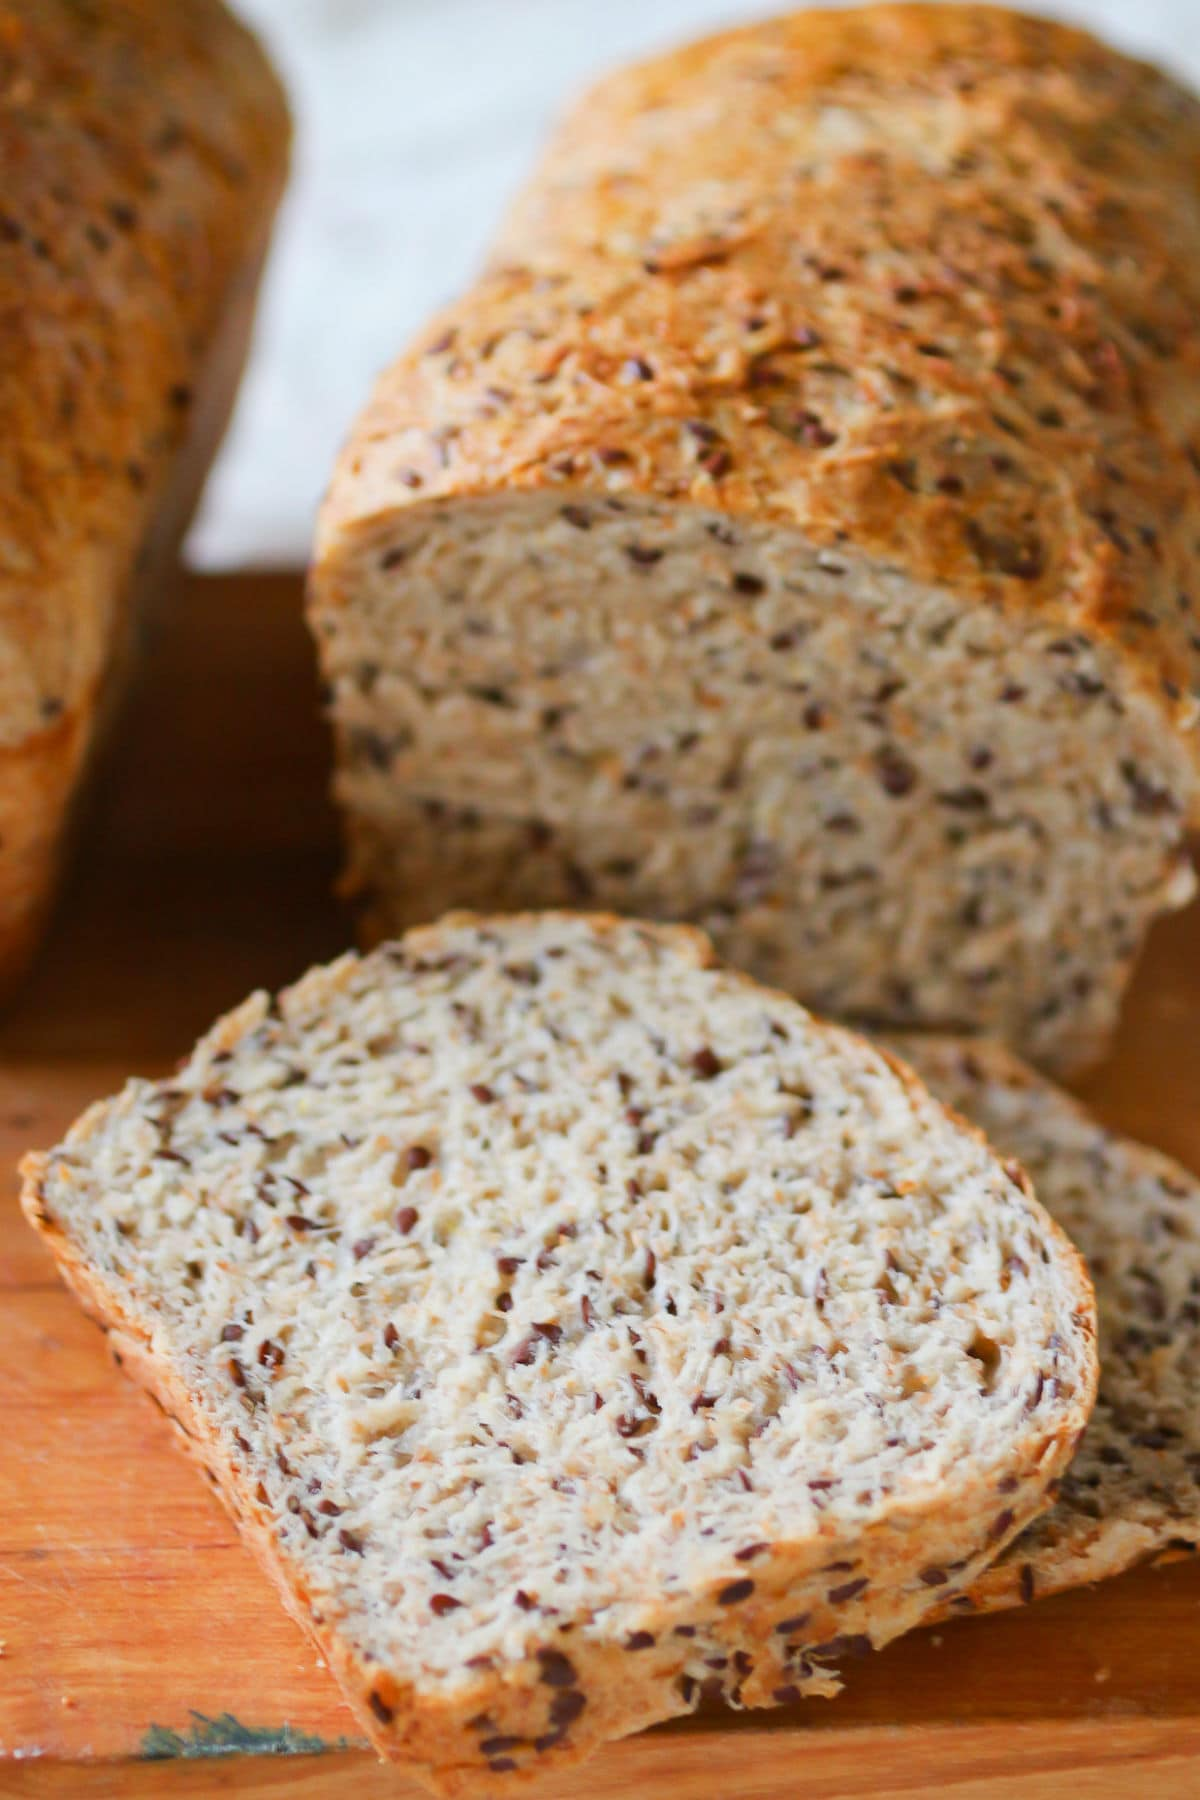 Multigrain bread sliced to show the internal texture with the flaxseeds.